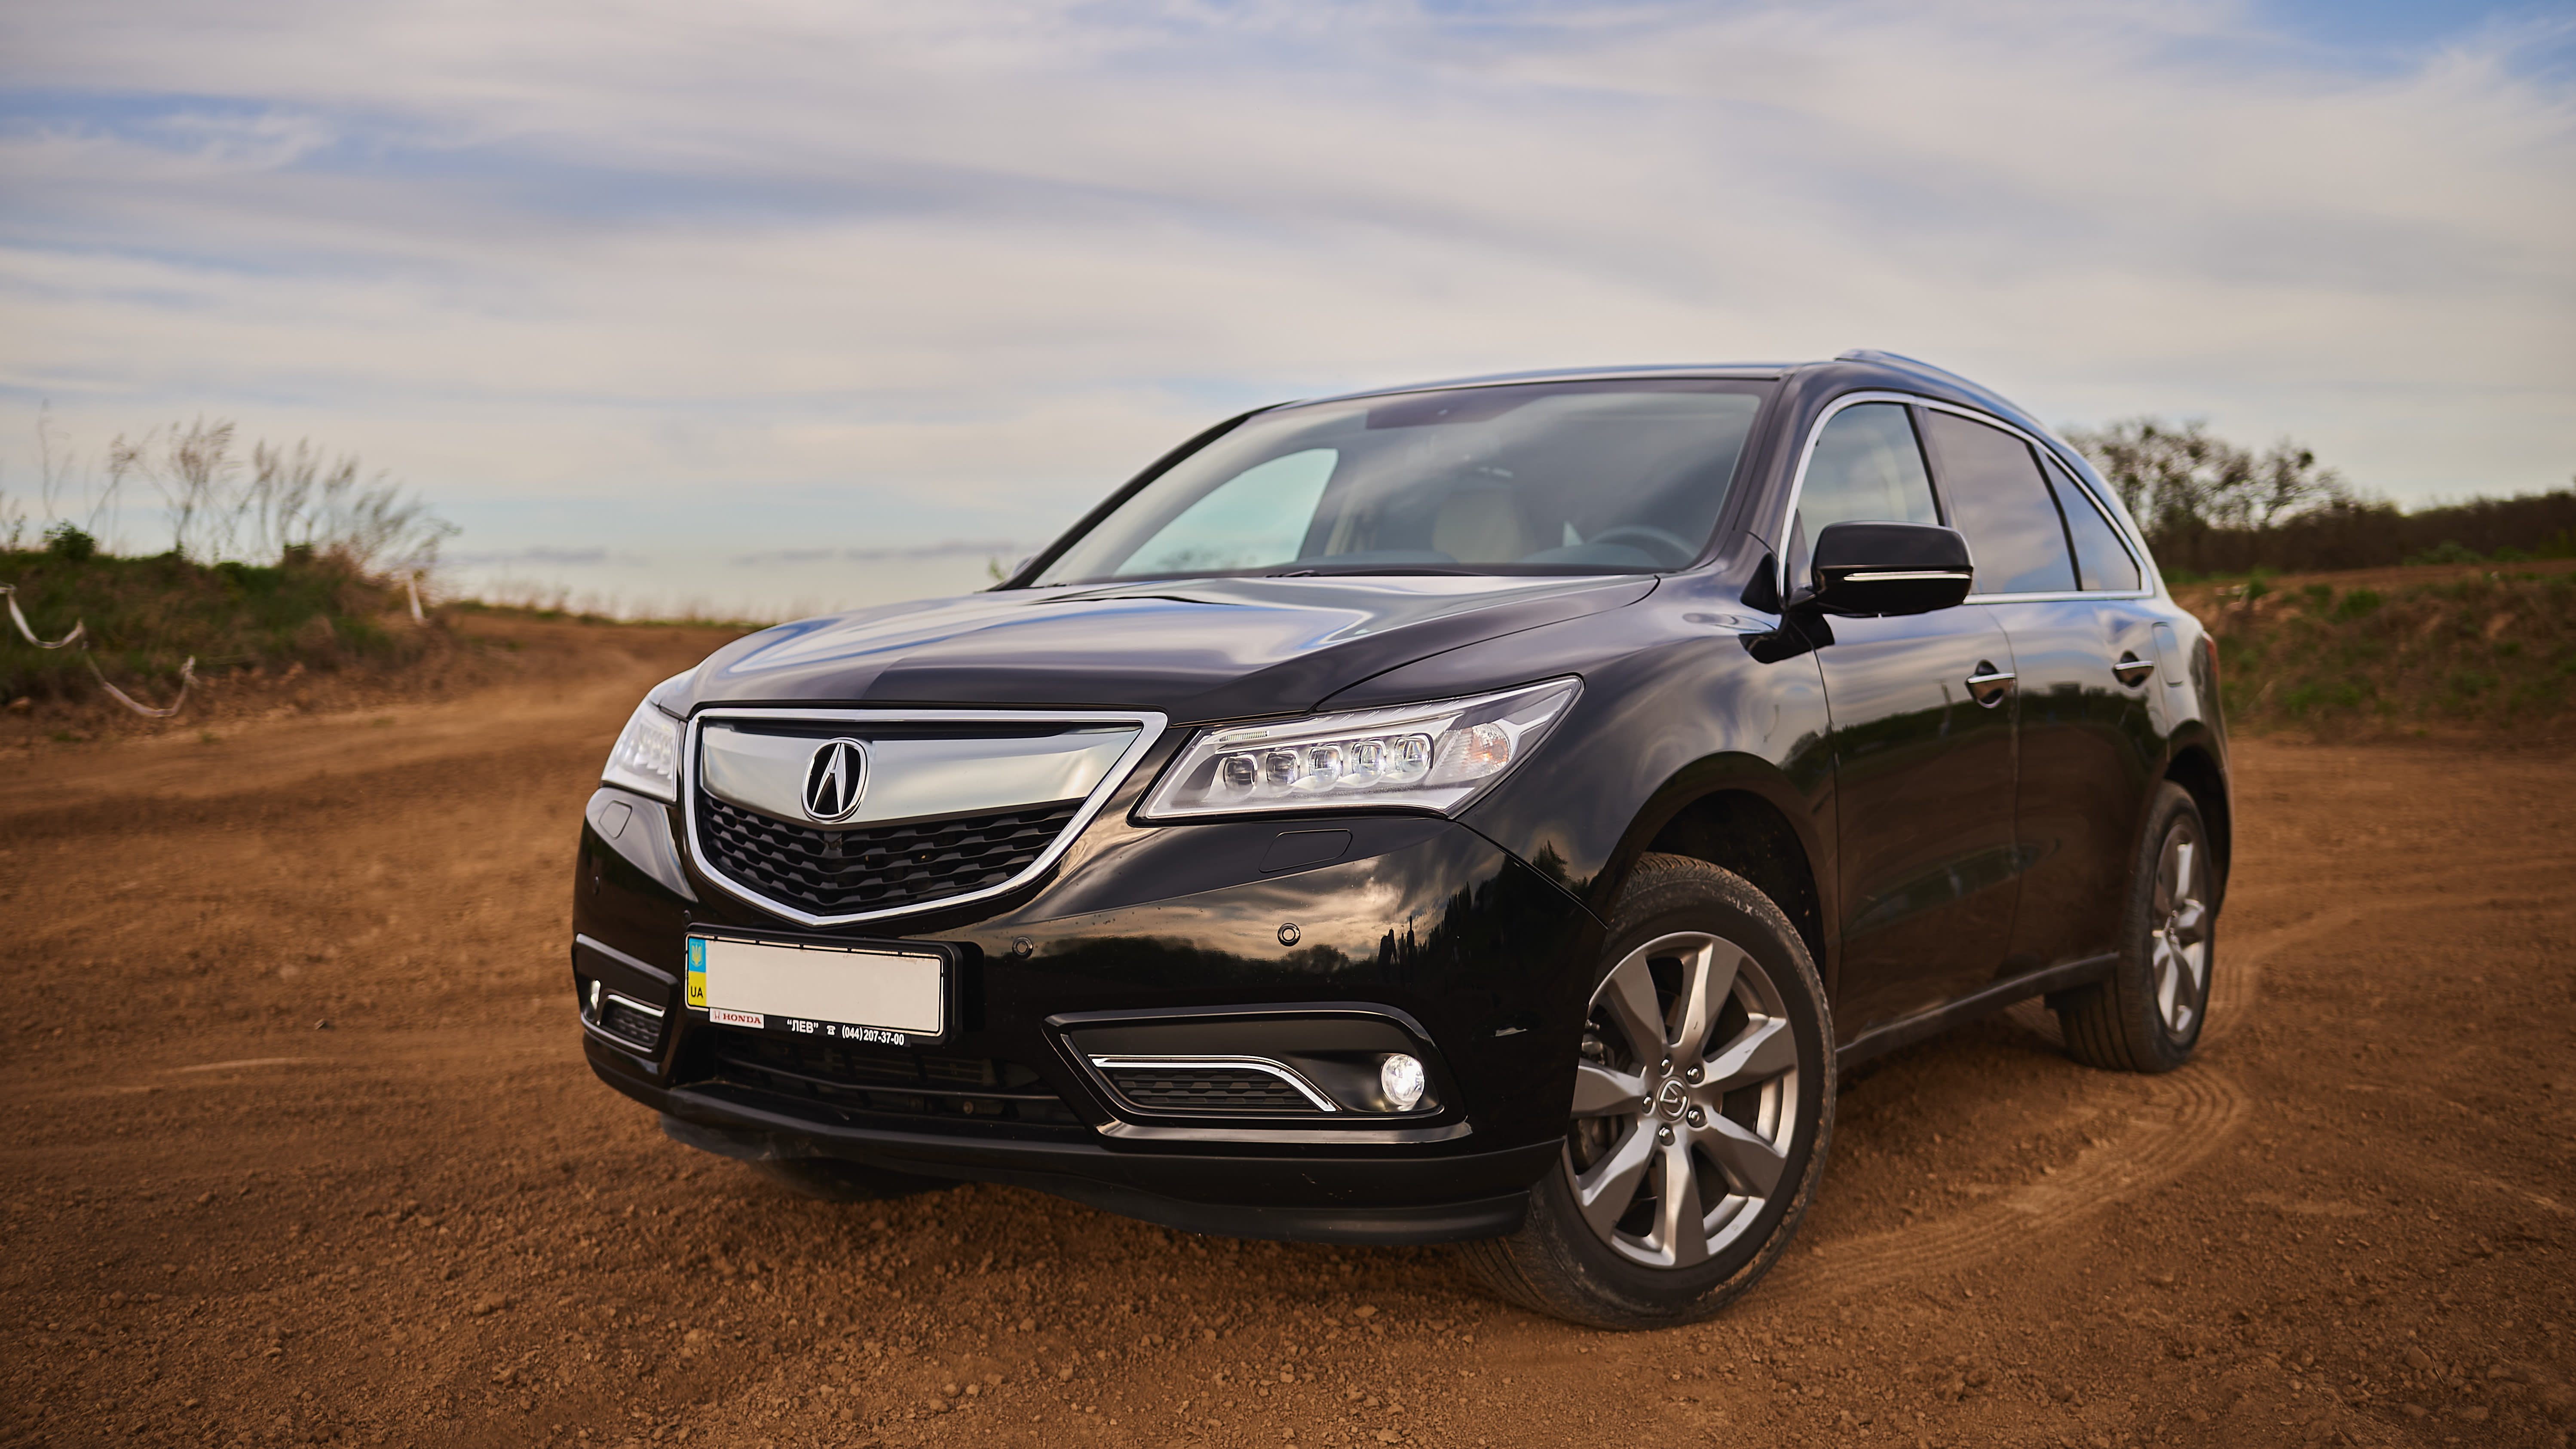 Honda Recalls Nearly 65,000 Acura MDX Vehicles for Brake Issues